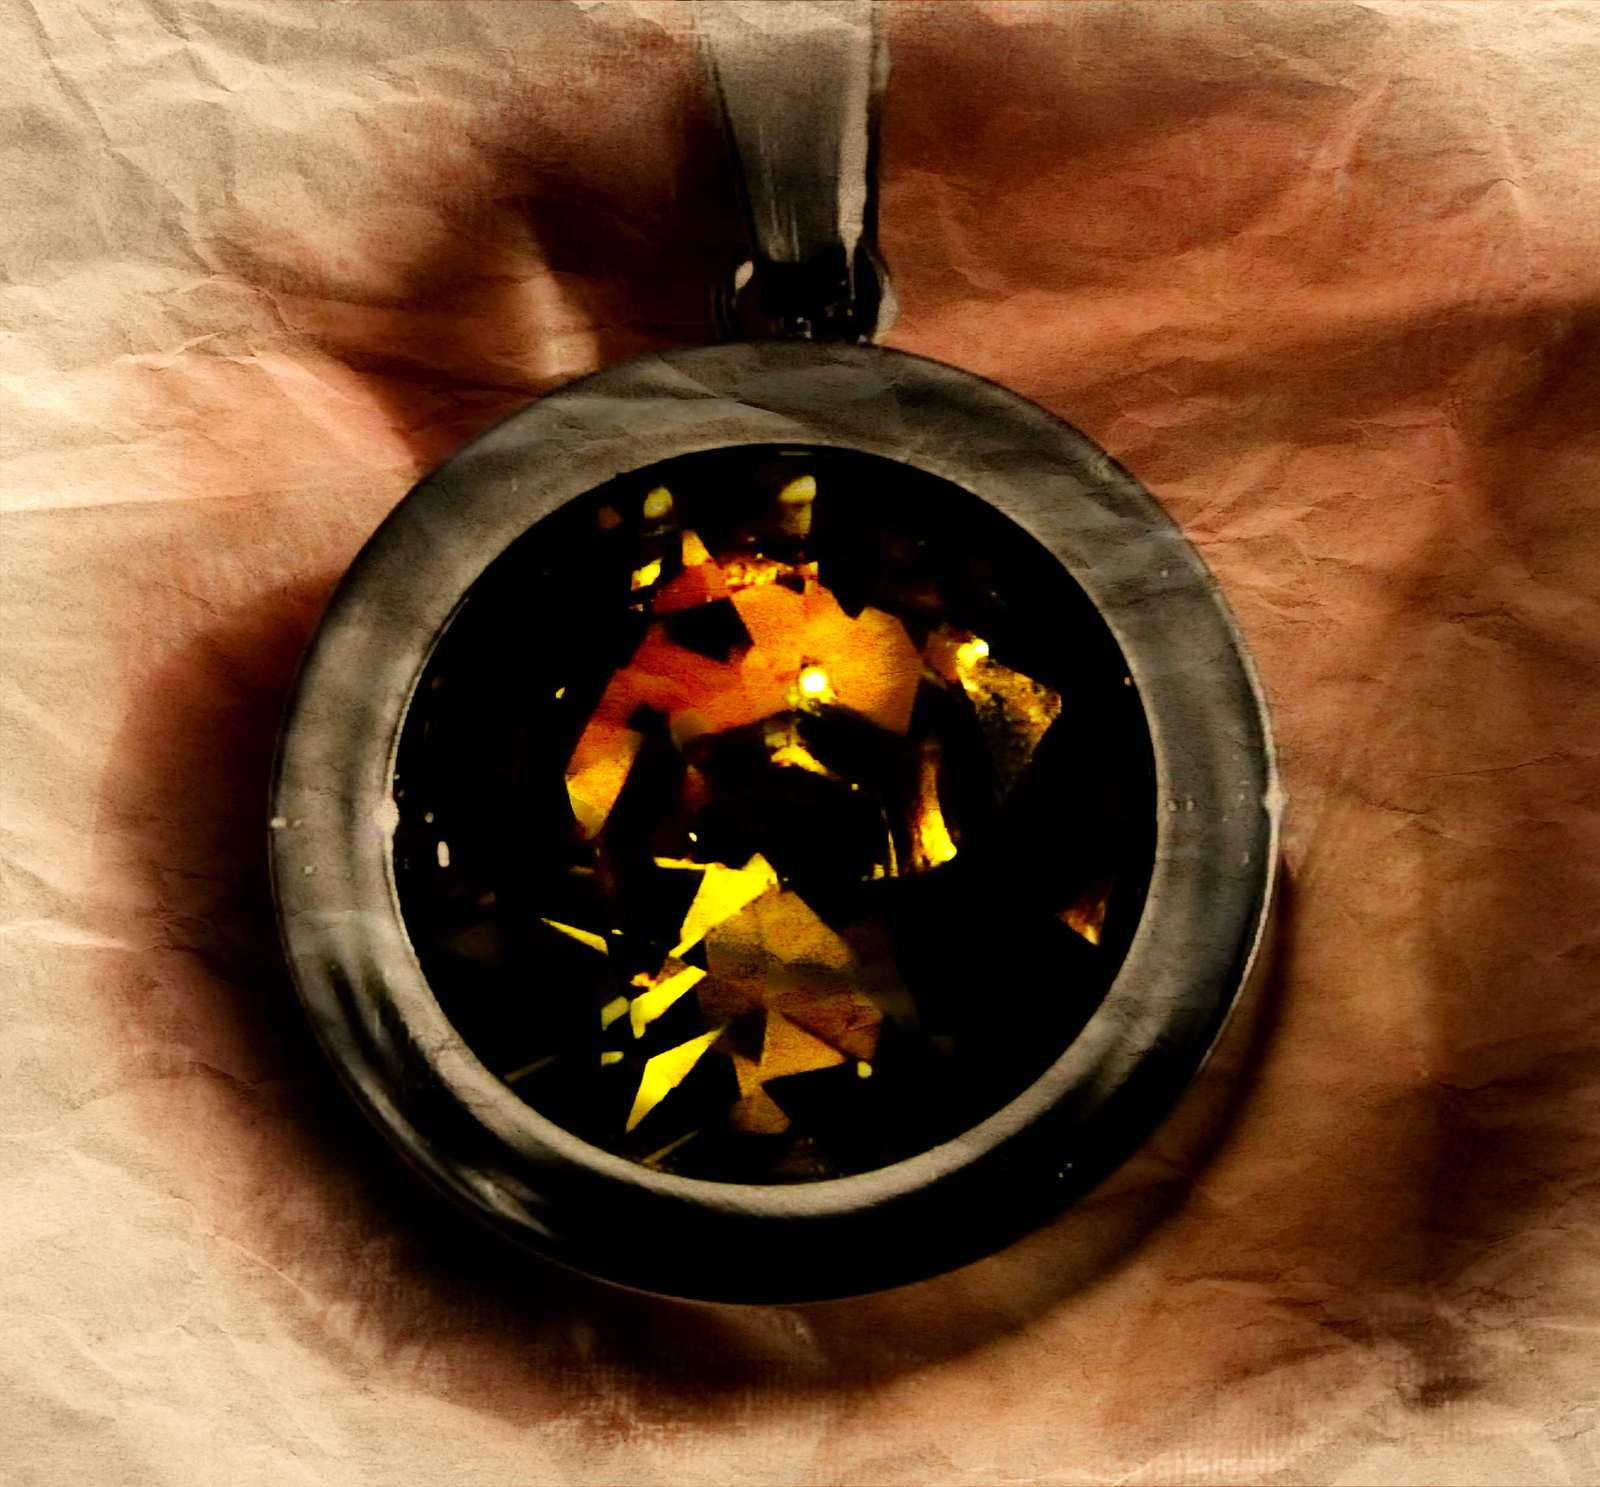 Haunted wealth talisman SUPER NOVA BILLIONAIRE WISHING WELL OF PROSPERITY!